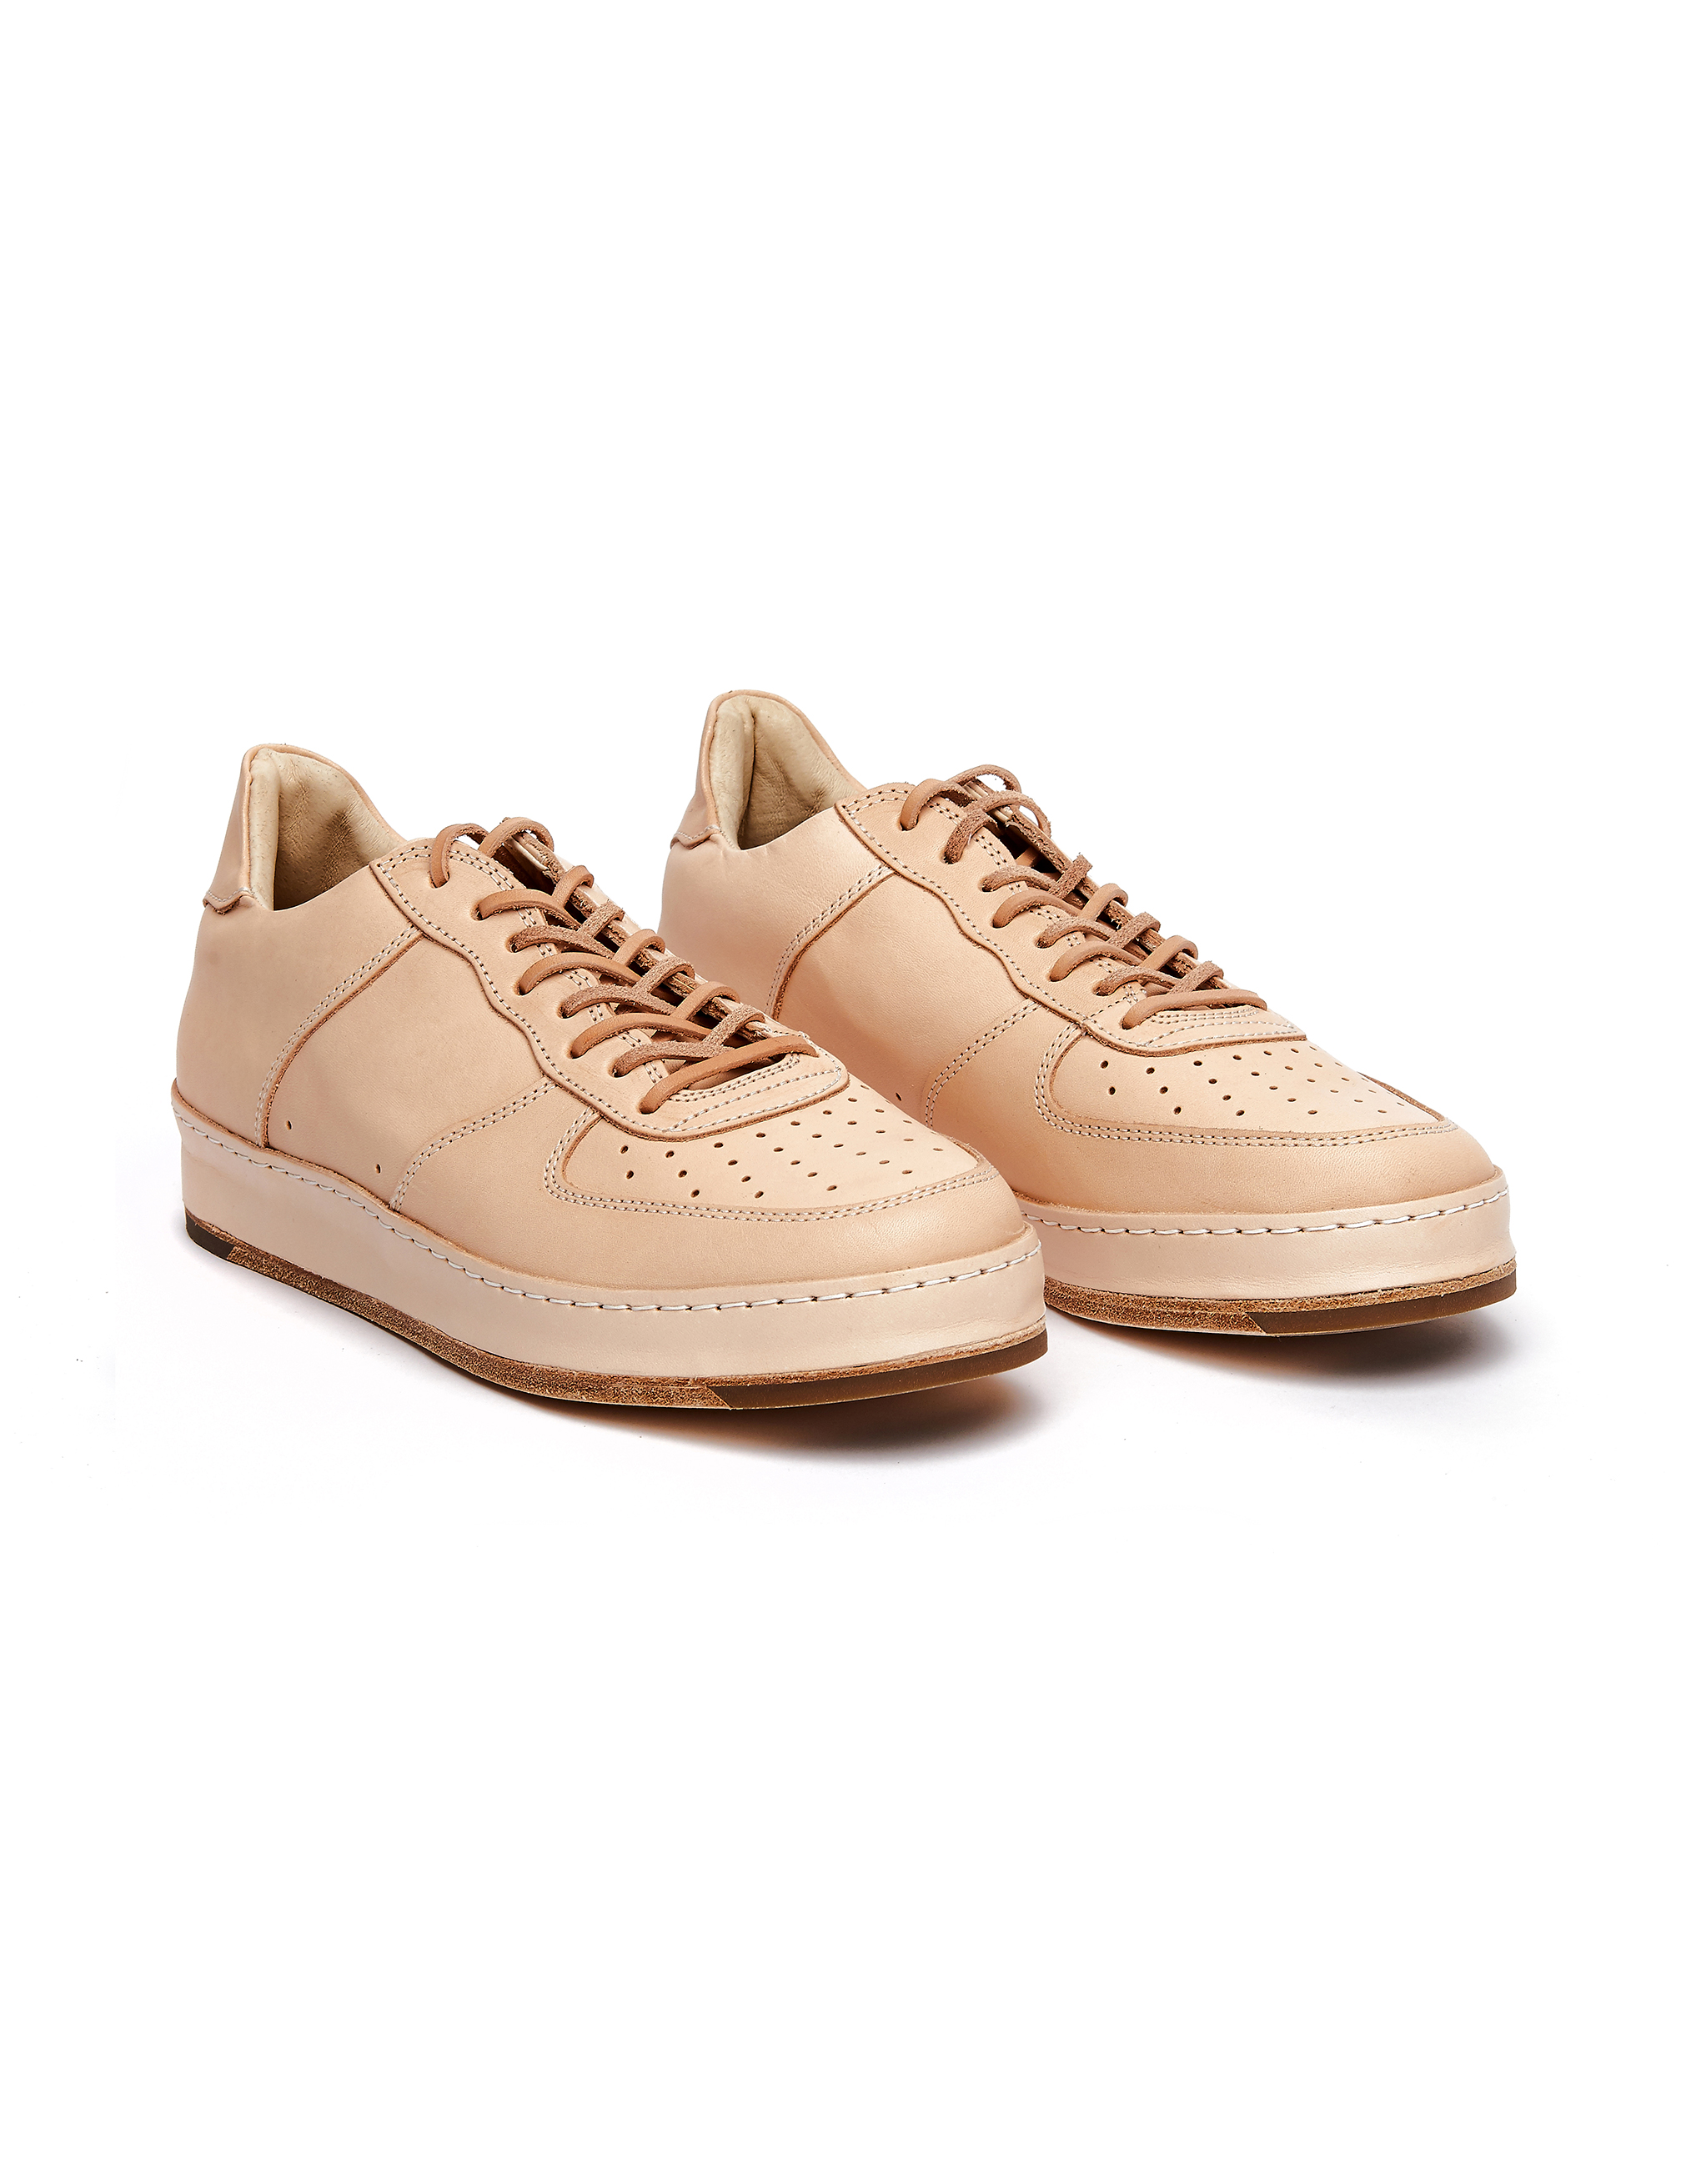 Hender Scheme Beige Leather MIP-22 Sneakers